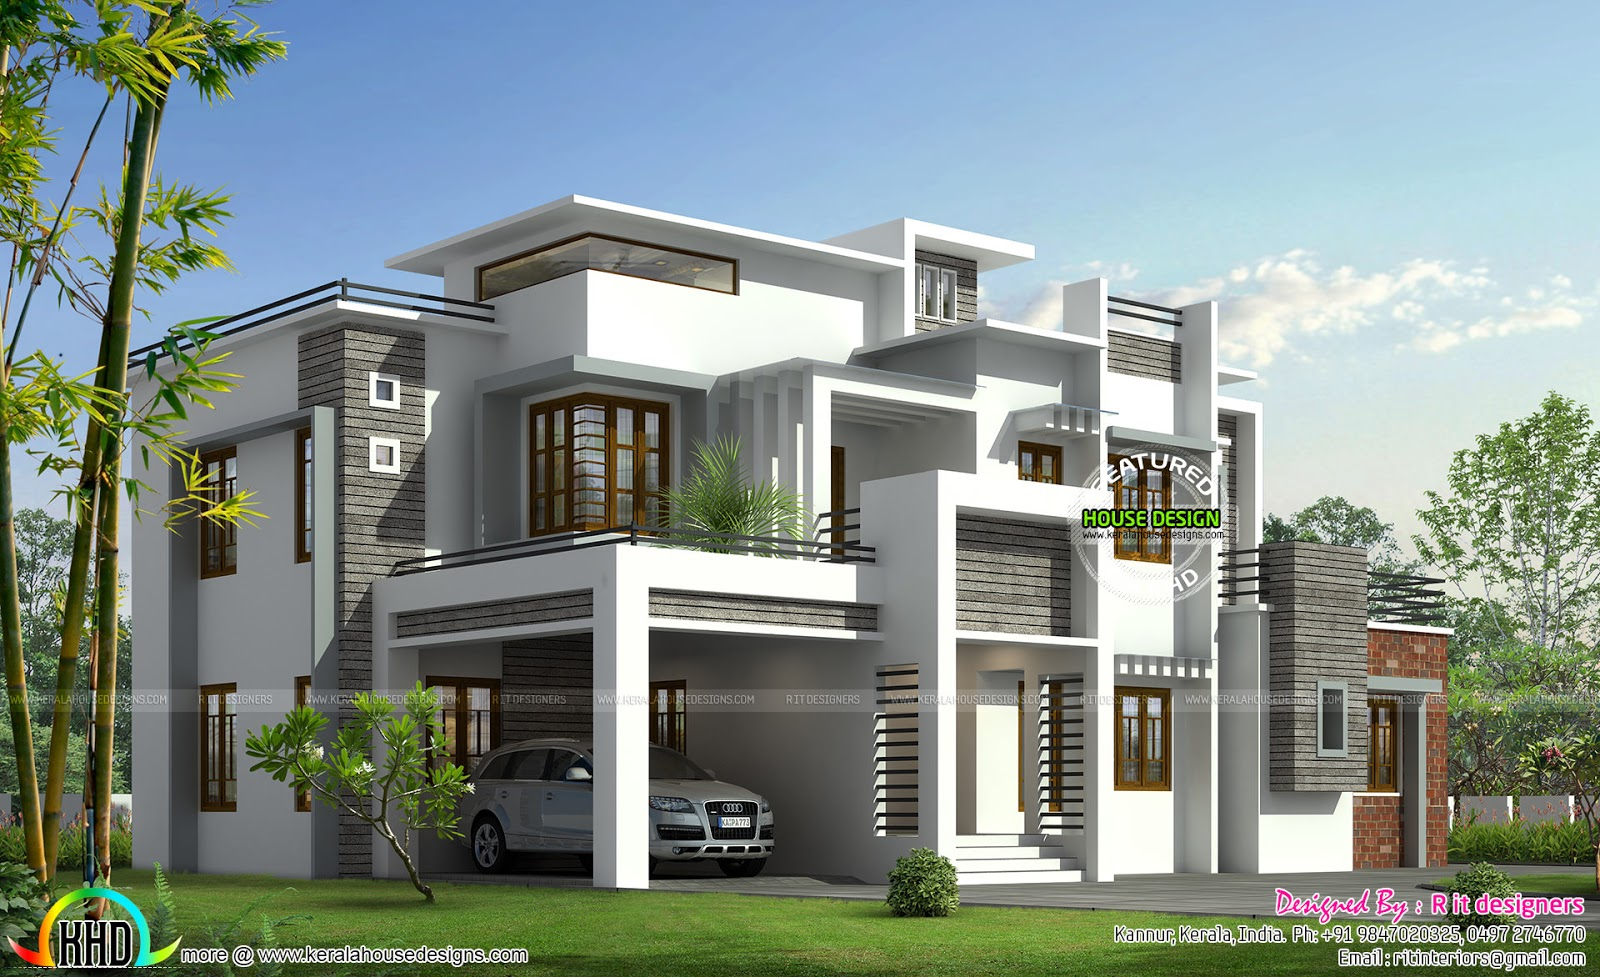 Box model contemporary house kerala home design and for Design for small houses